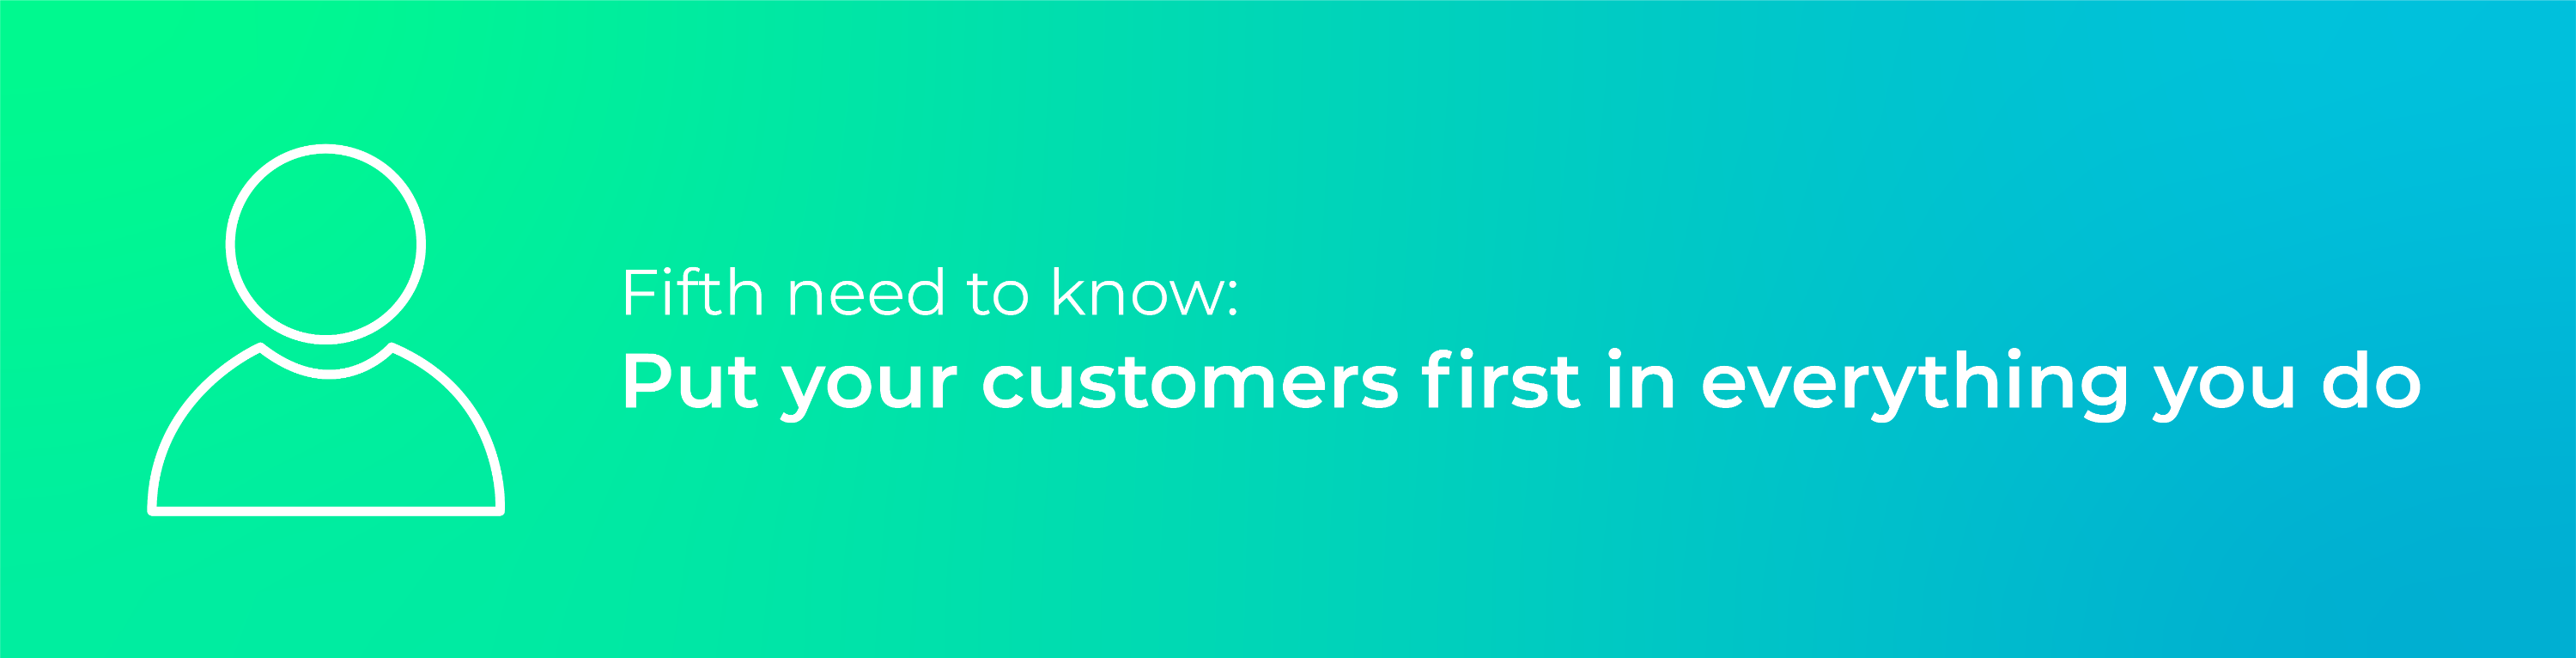 Fifth need to know - customer first